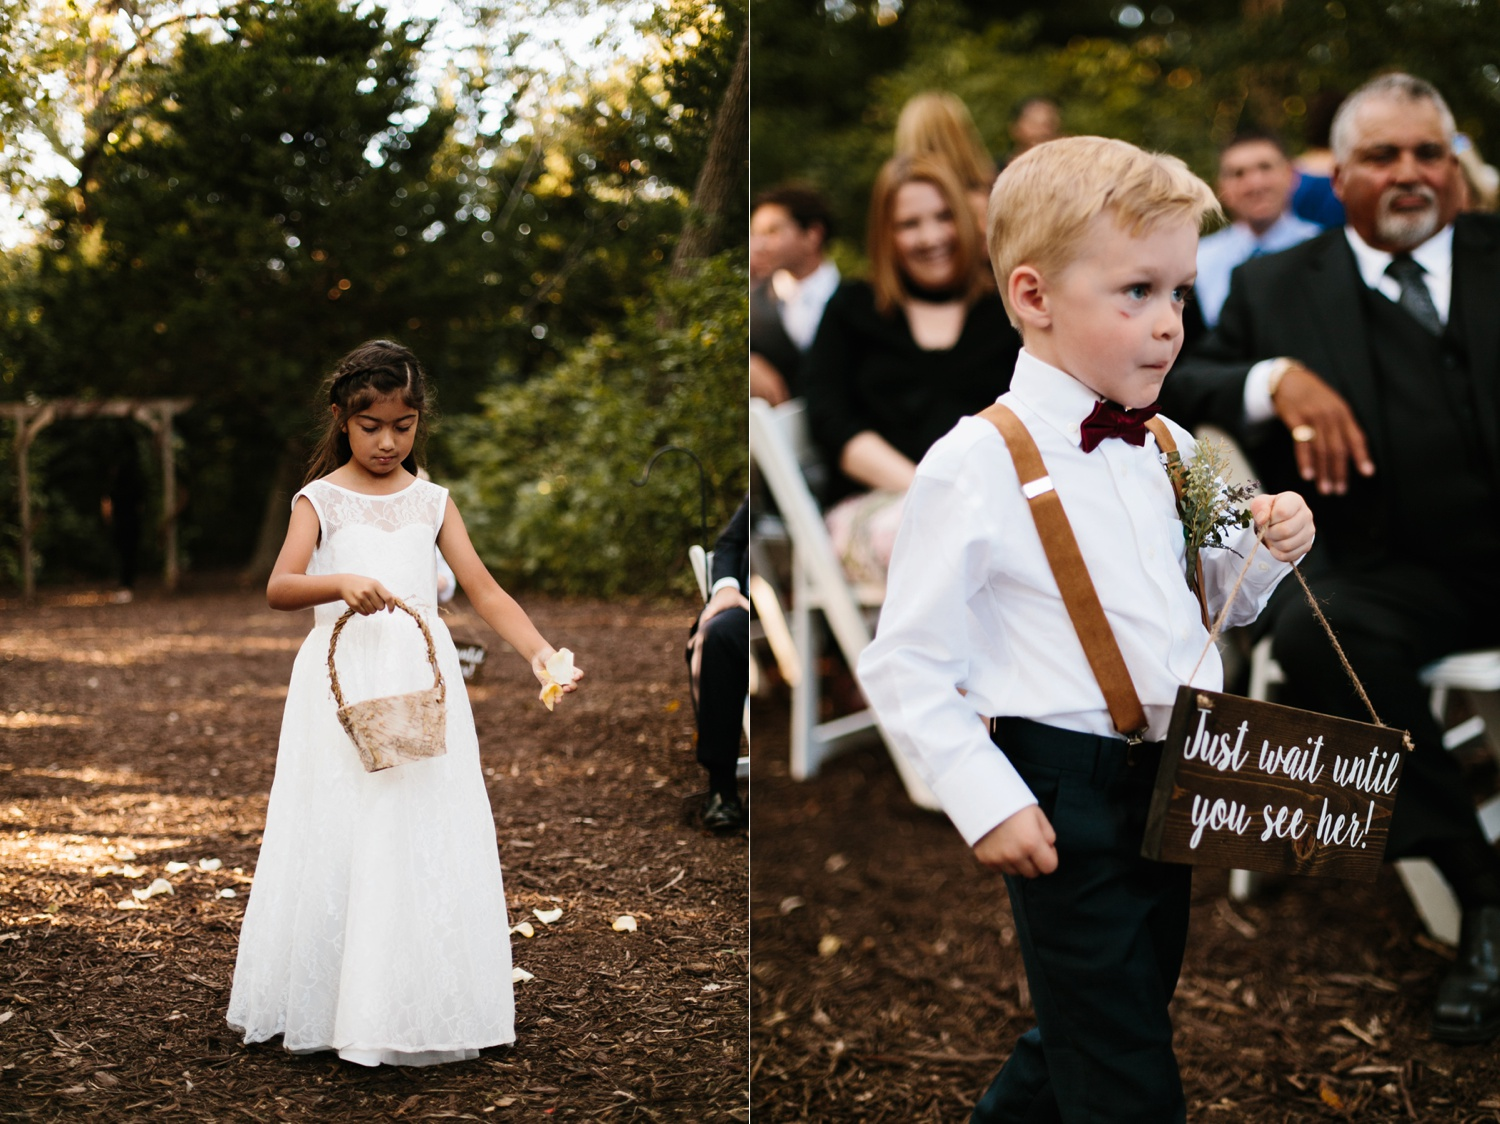 Erica + Henry | a bohemian inspired wedding at Chandlers Gardens in Salina, TX by North Texas Wedding Photographer Rachel Meagan Photography 068